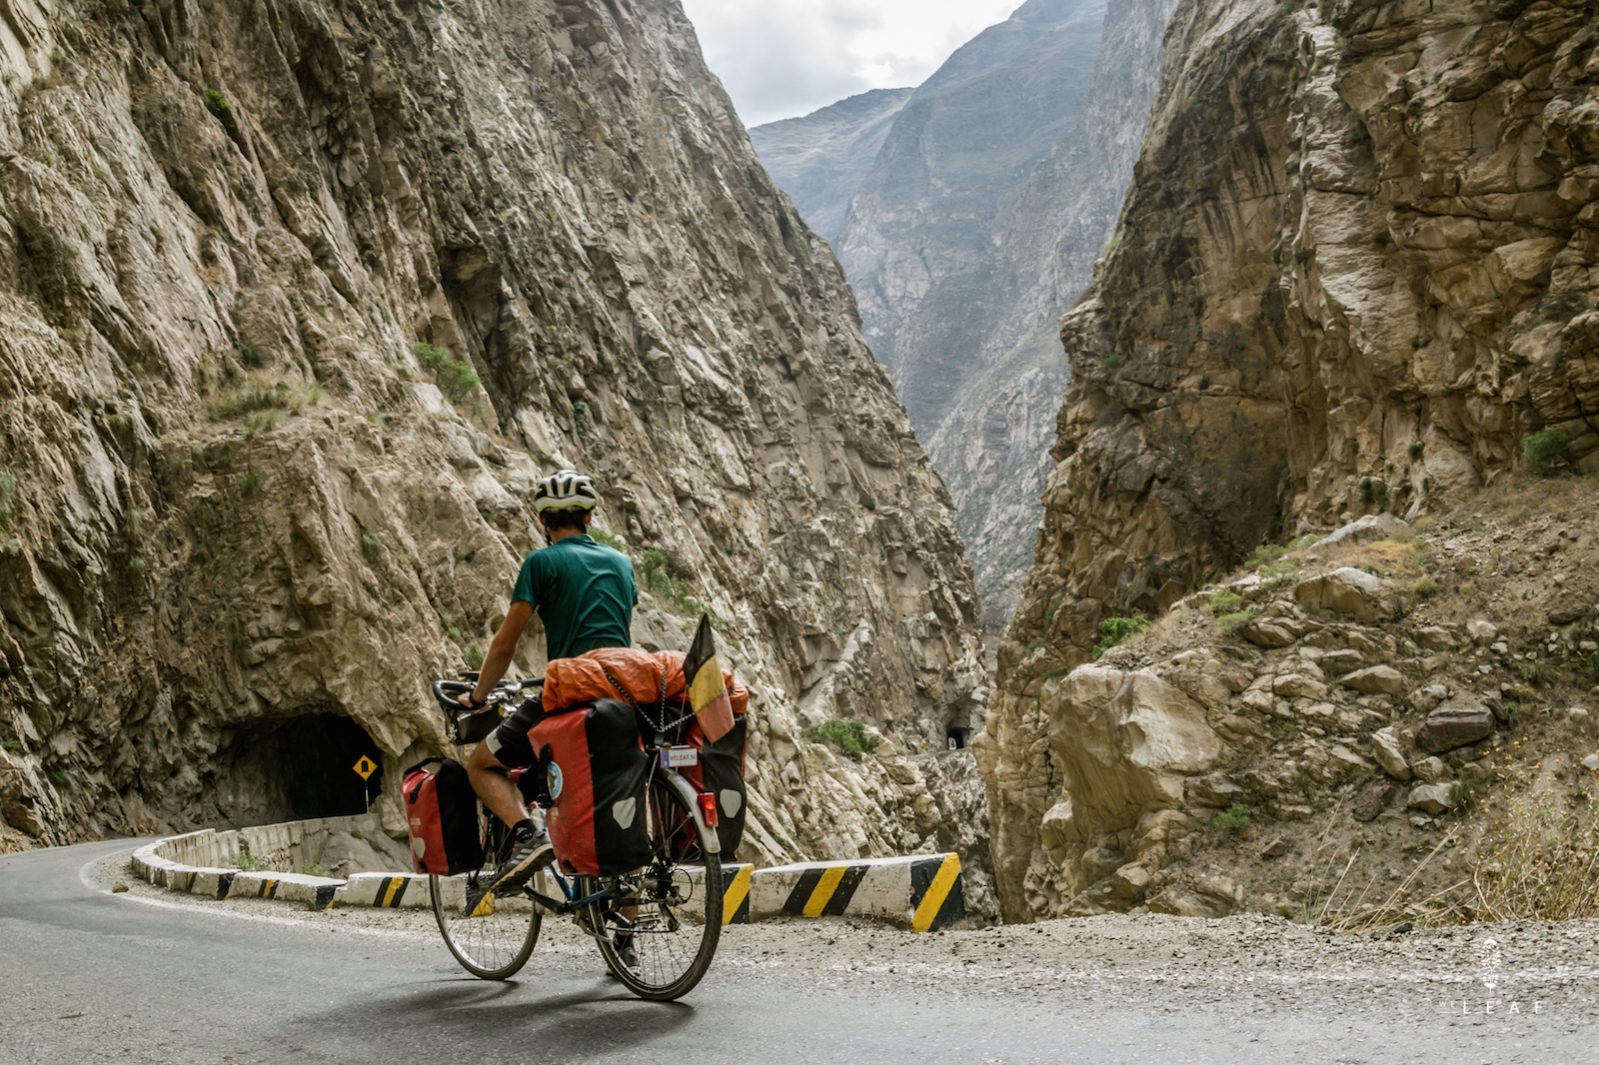 cycling Cañon del Pato, a beautiful cycling route in Peru